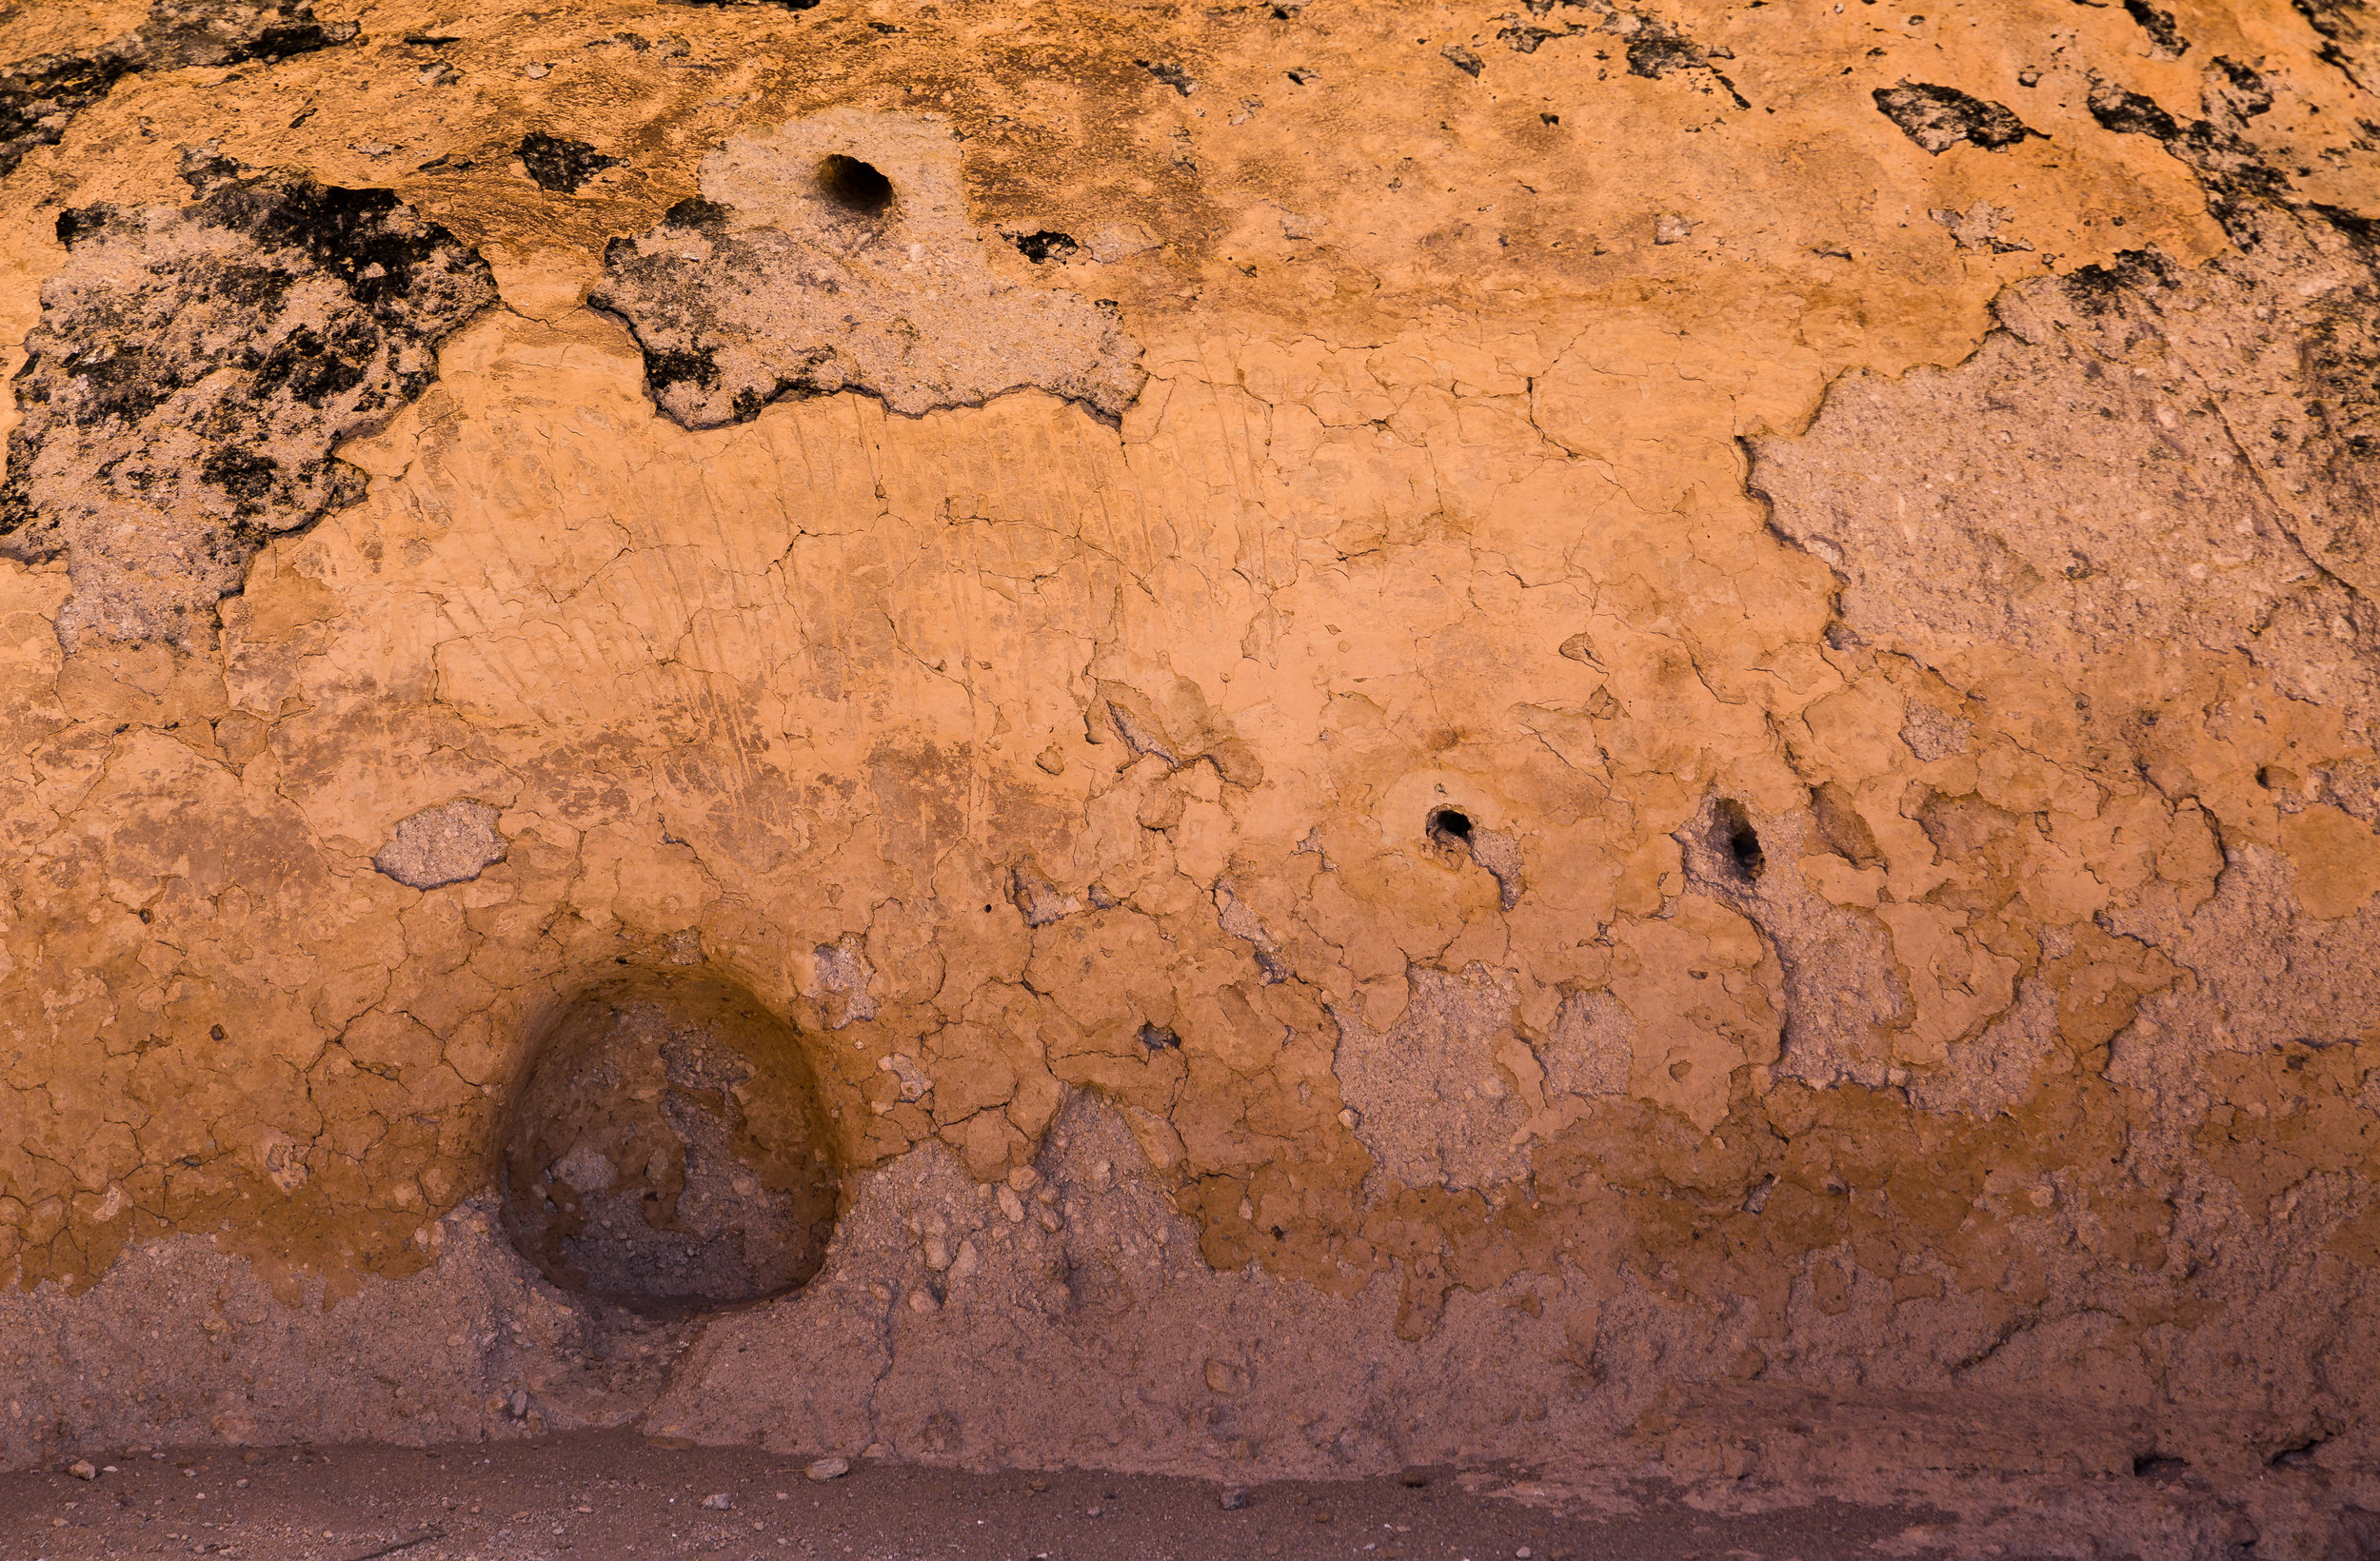 Wall niches are commonly found in ancient structures, and were likely used as shelves or storage. Original plaster is also visible here, as well as soot from ancient fires.